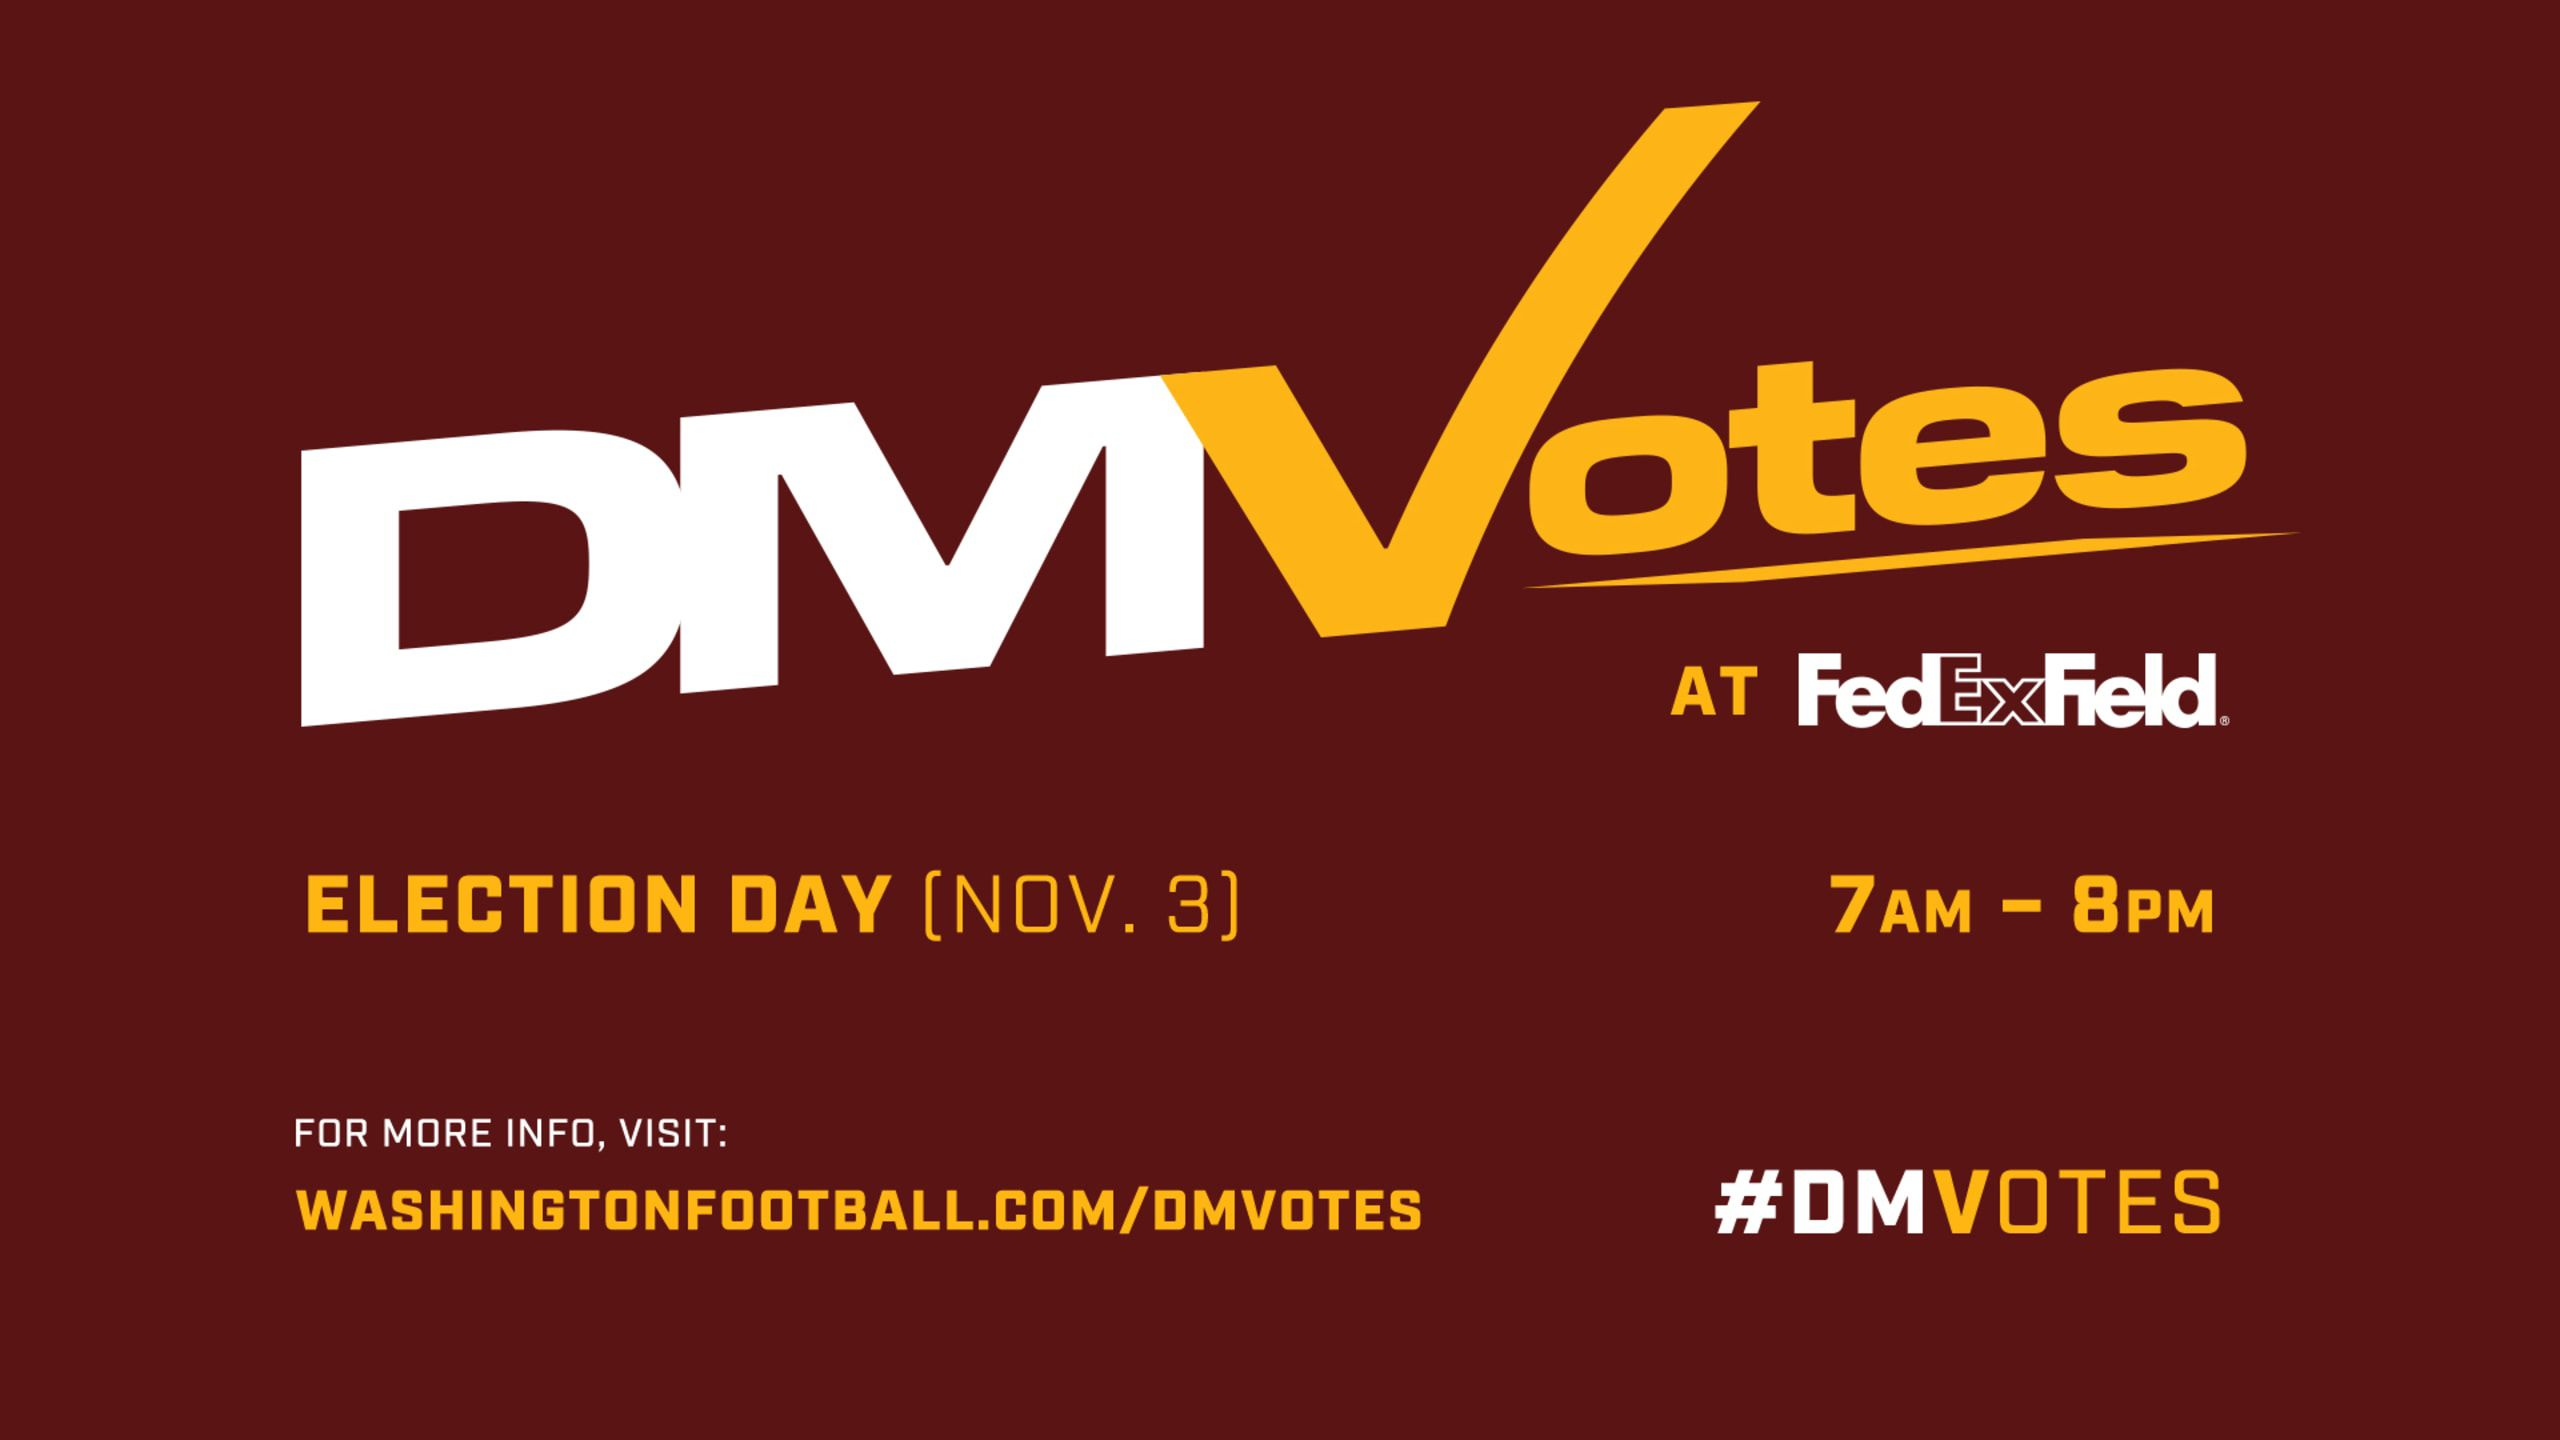 How-To-Guide: Voting At FedExField On Election Day